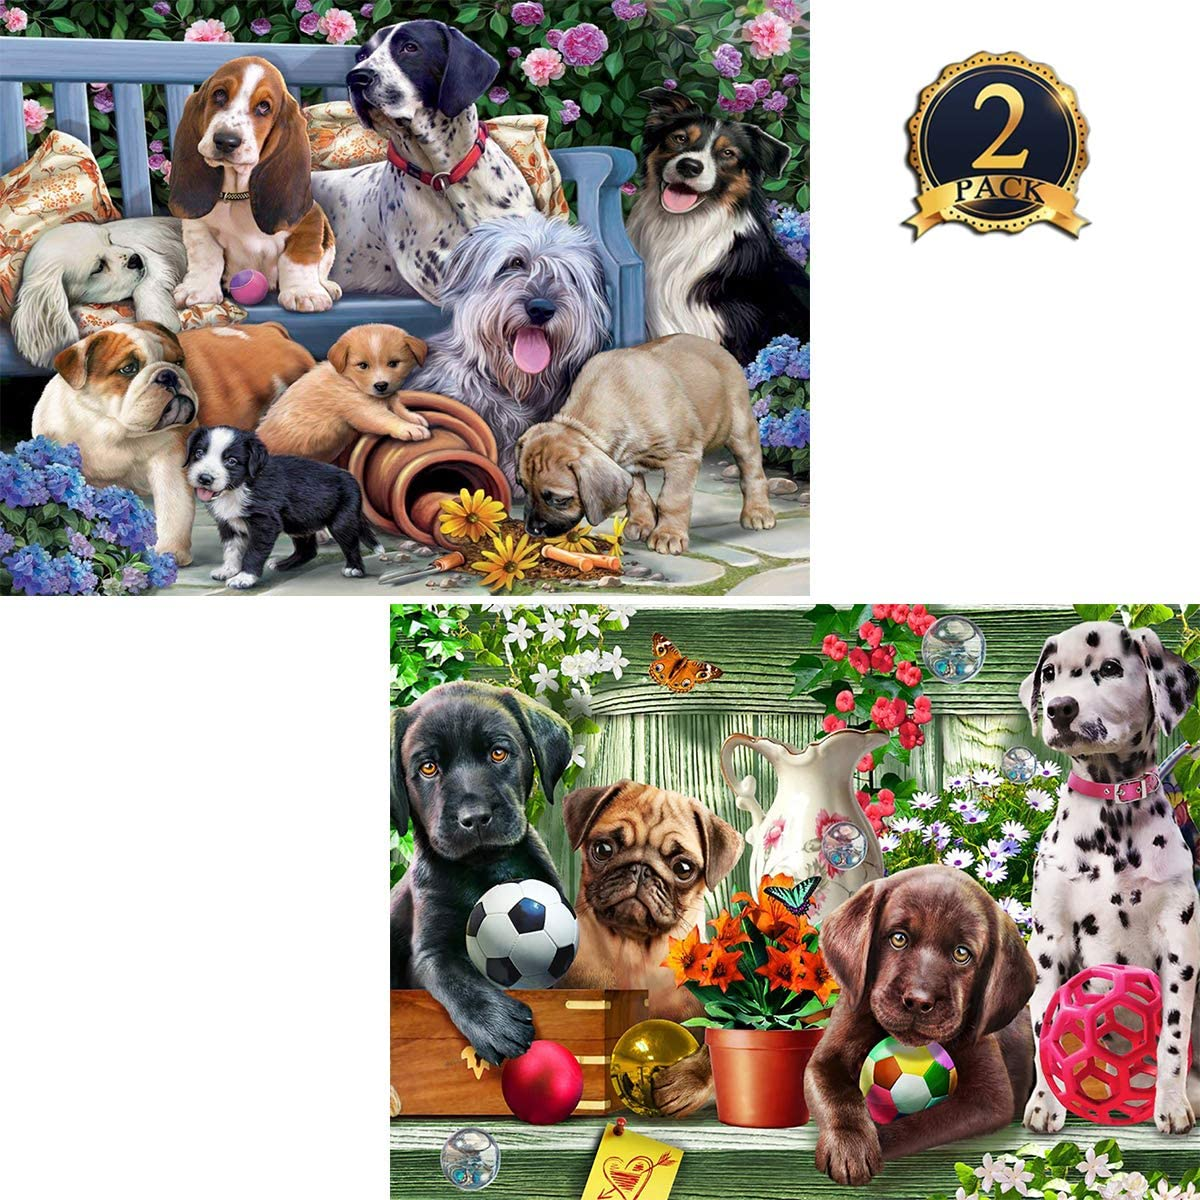 Puppy and Kitten Rhinestone Embroidery Craft Paint with Diamonds DIY Wall Decor 30x30 cm Ginfonr 4 Pack 5D Diamond Painting Full Drill Flower Dog and Cat Diamonds Arts 12x12 inch